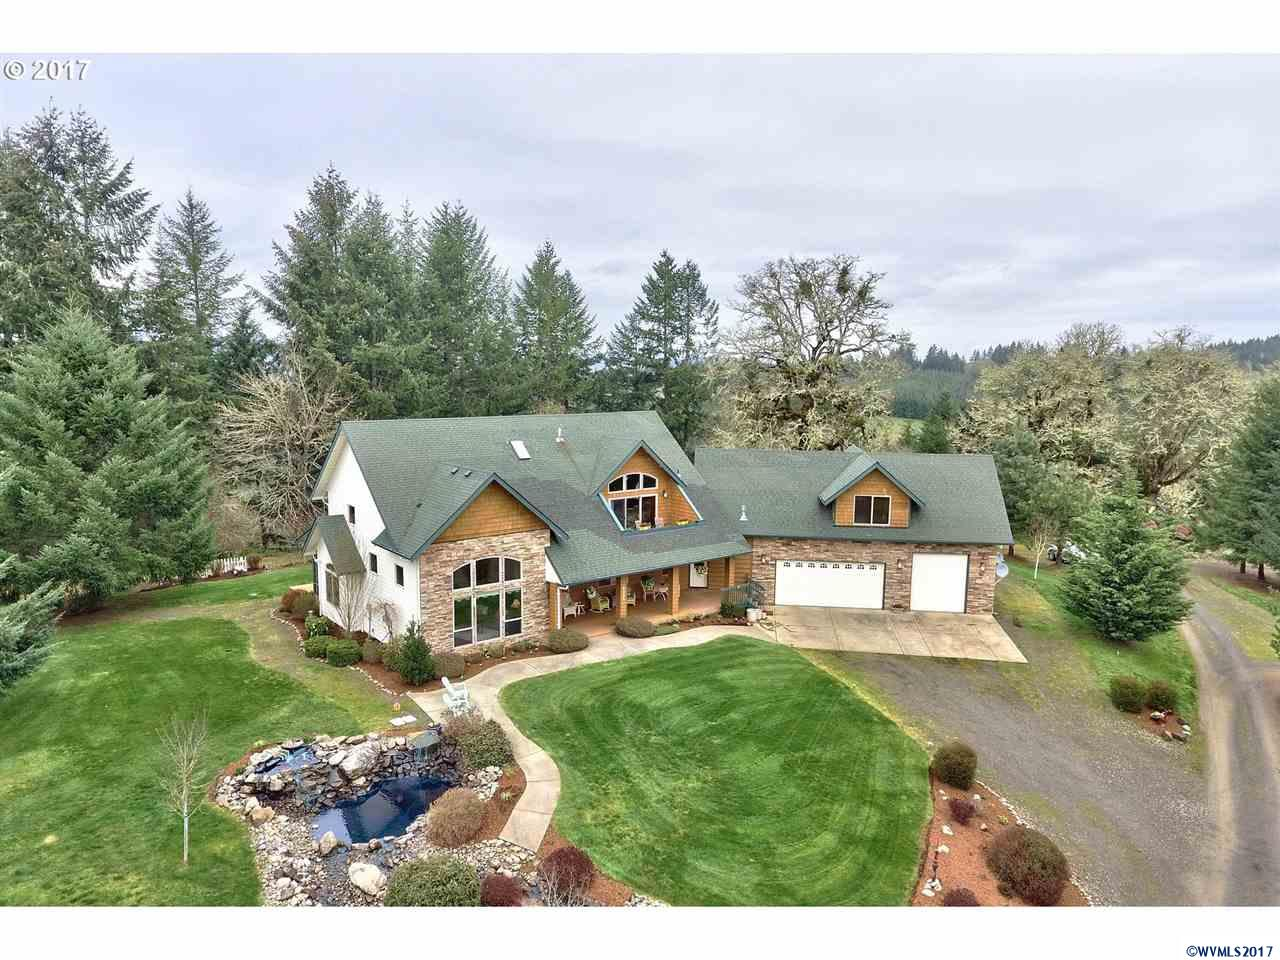 6025 Fern Hill Rd, Monmouth, OR 97361